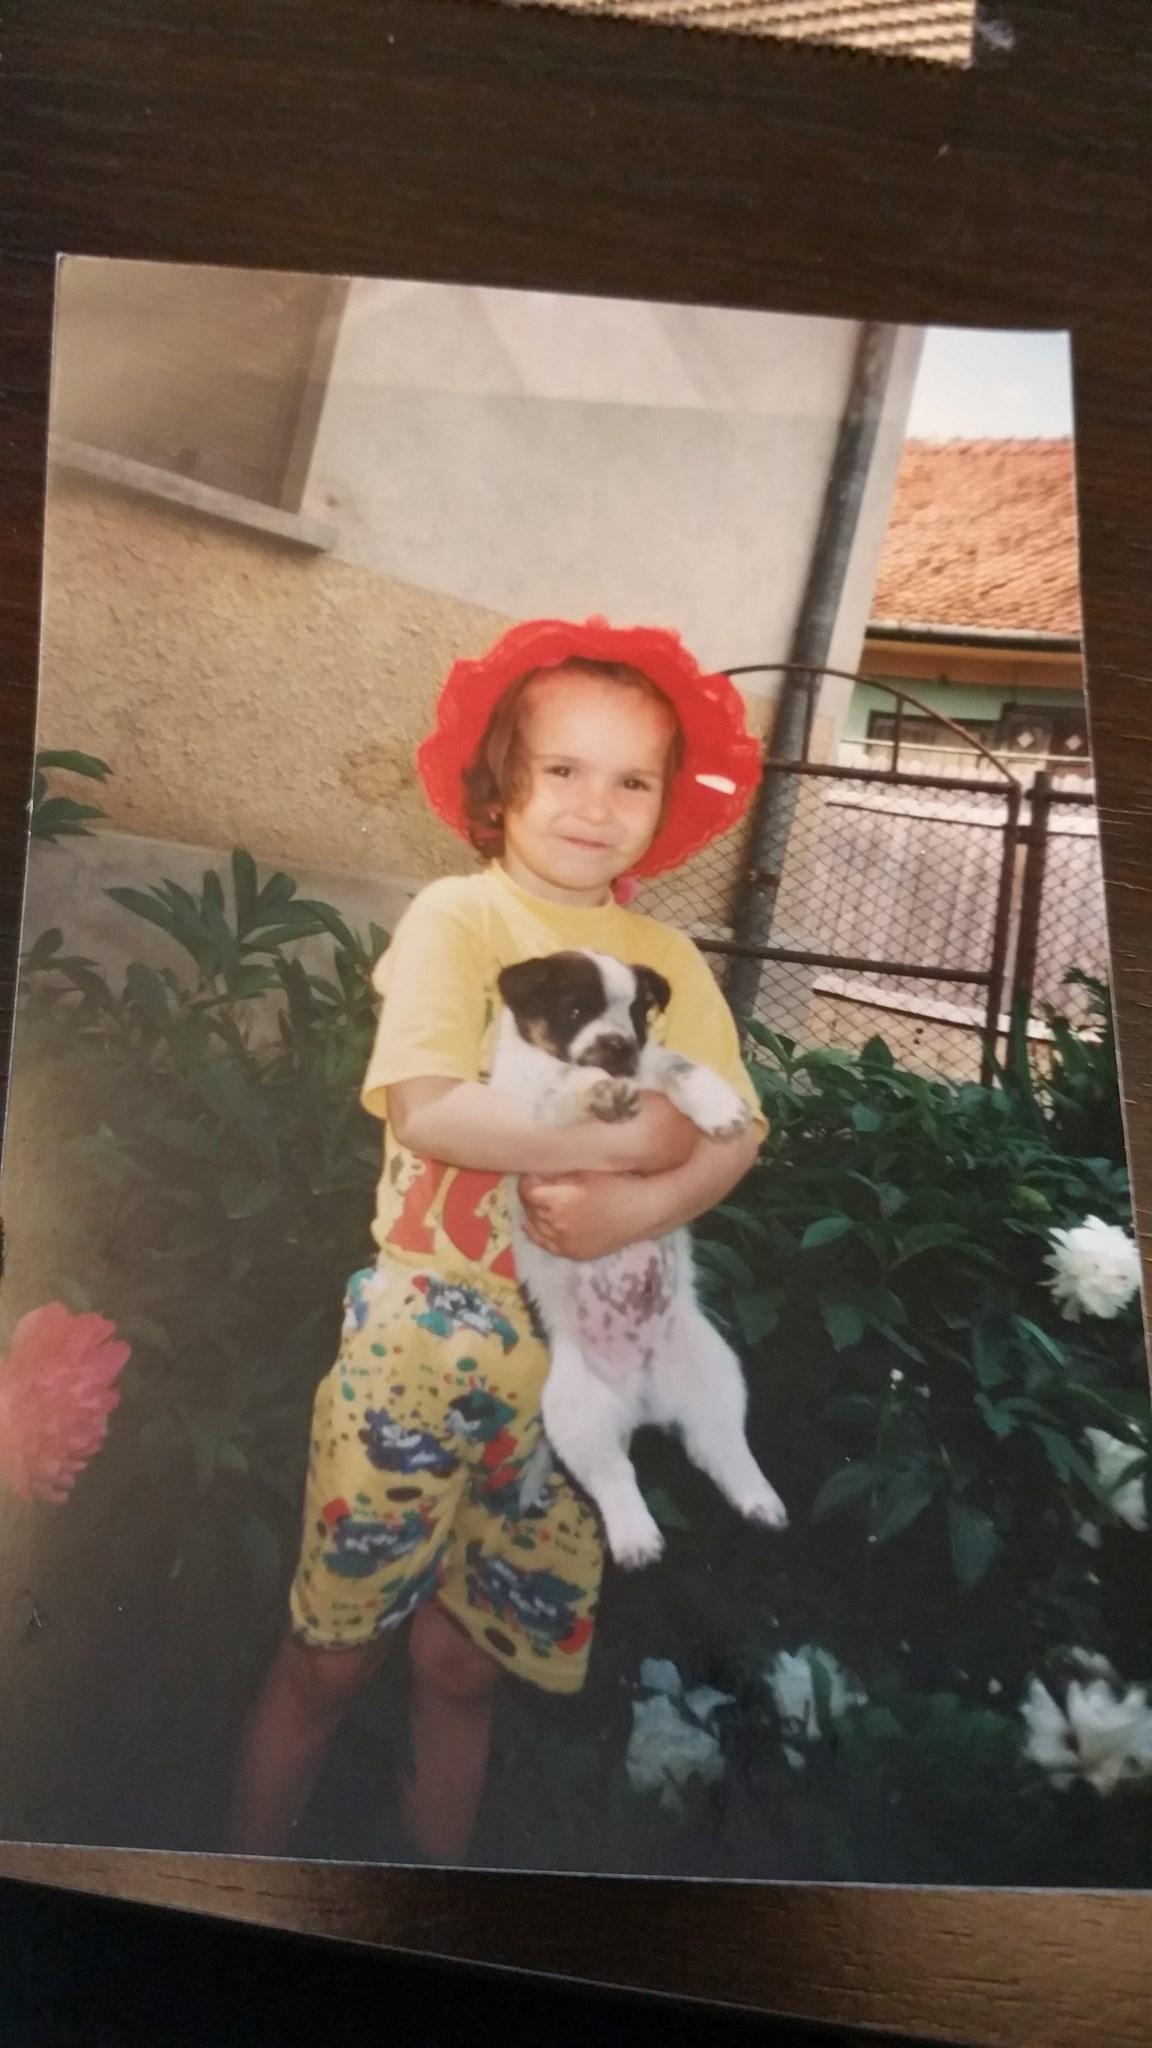 She was 3 and loved her puppy??